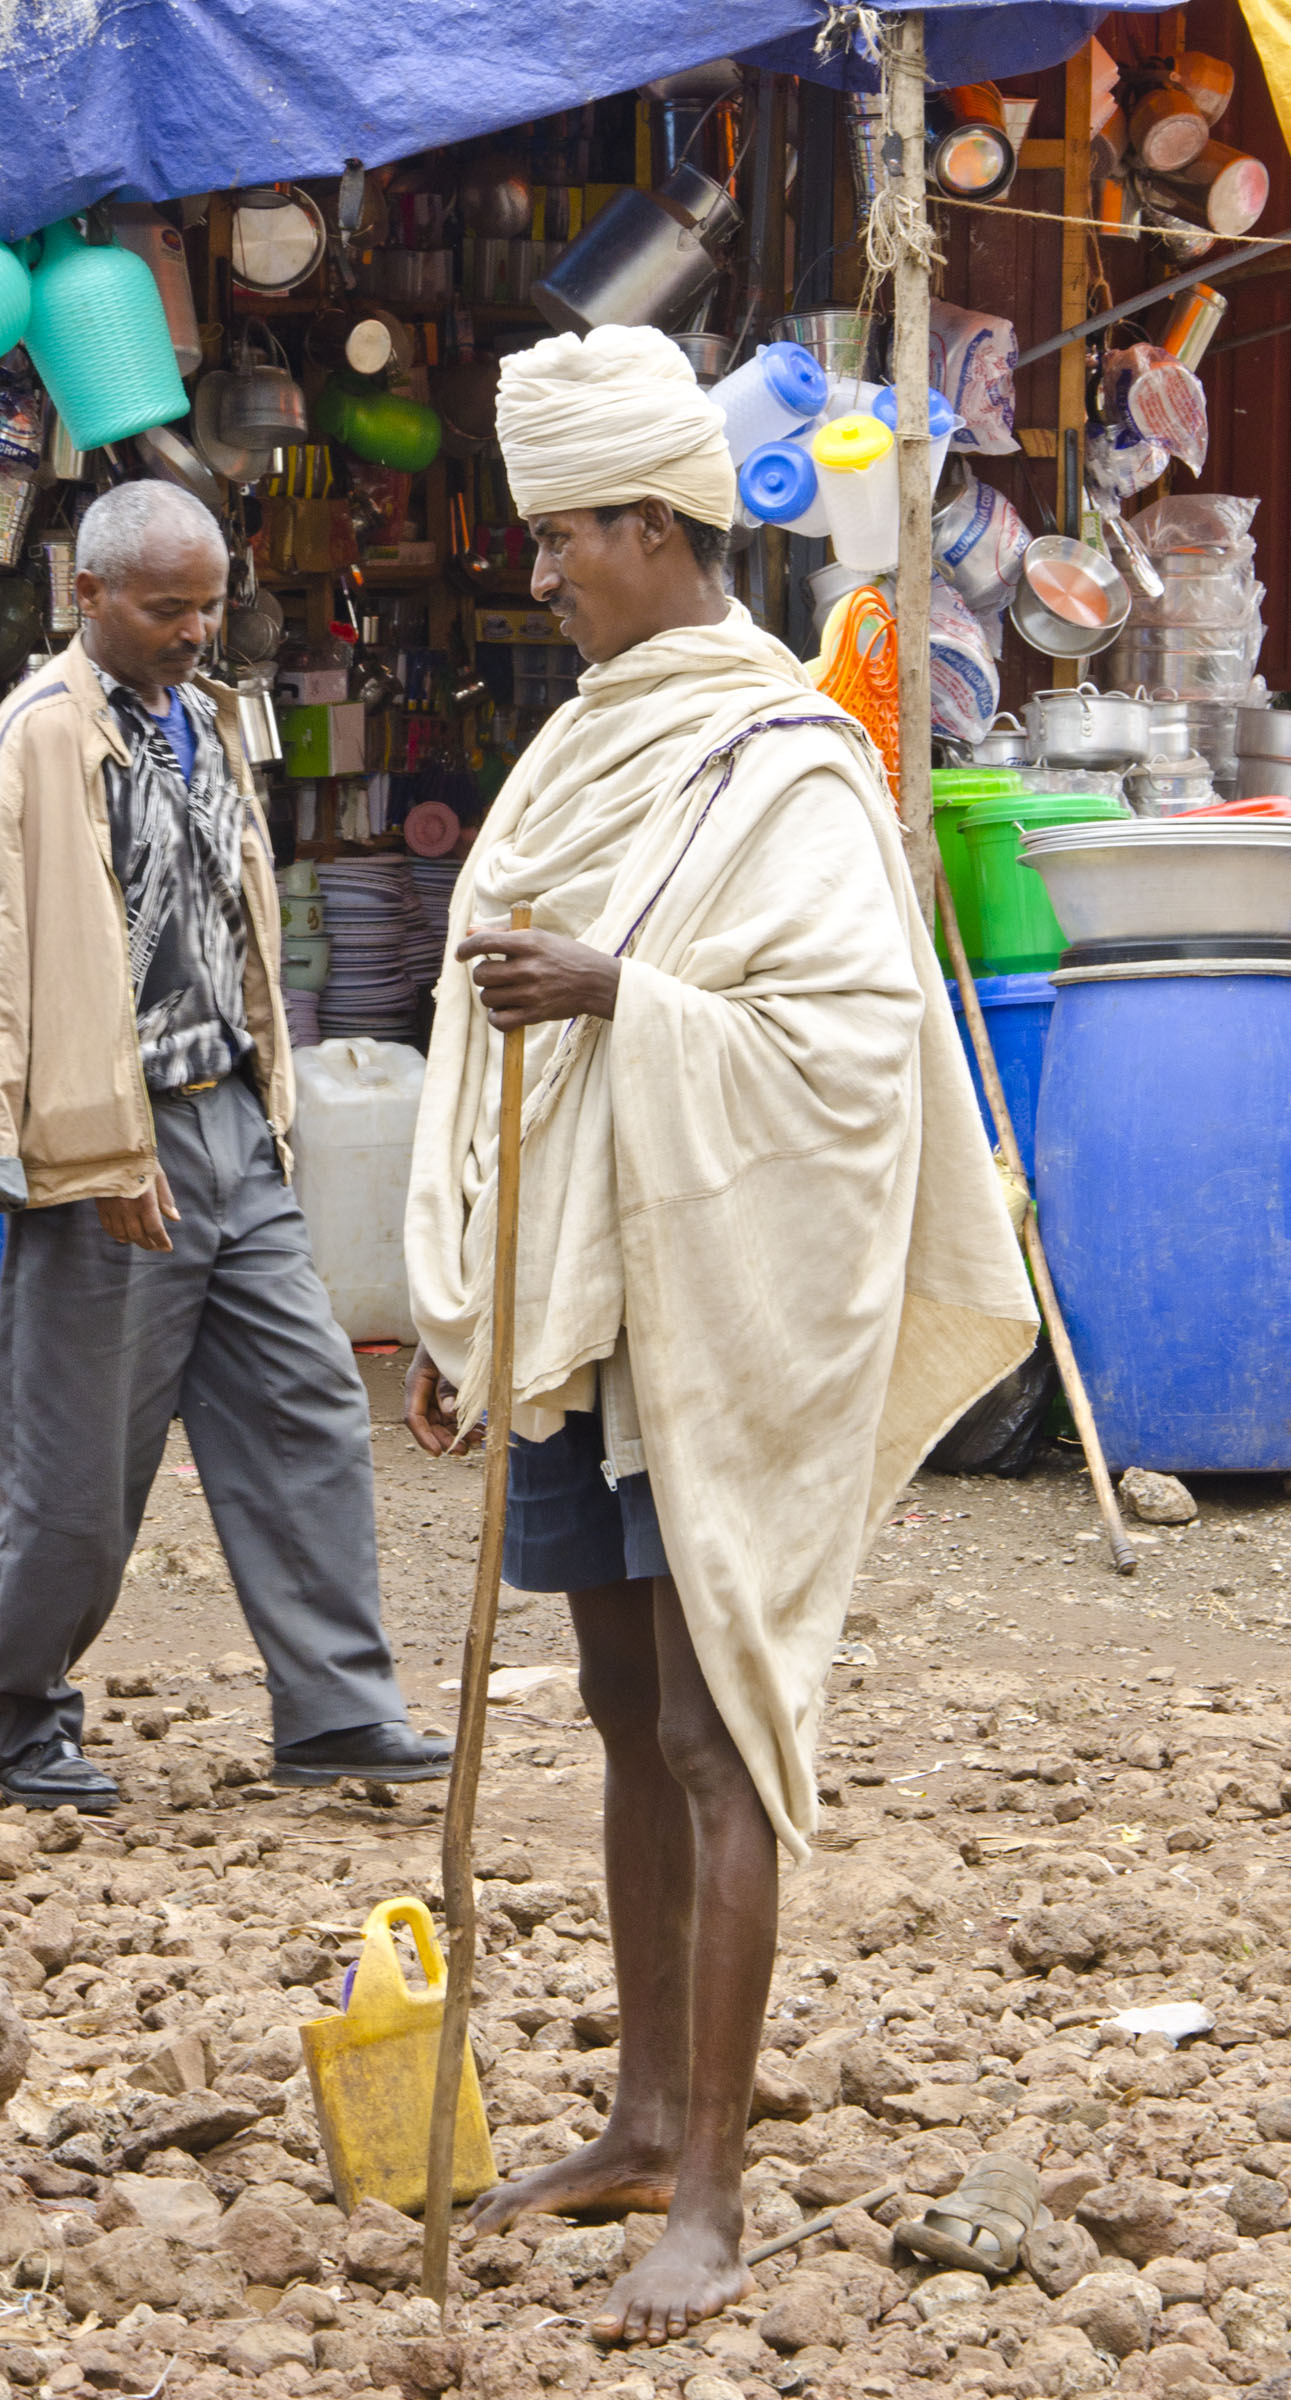 Ethiopian man with stave standing in front of market stall, Bahir Dar